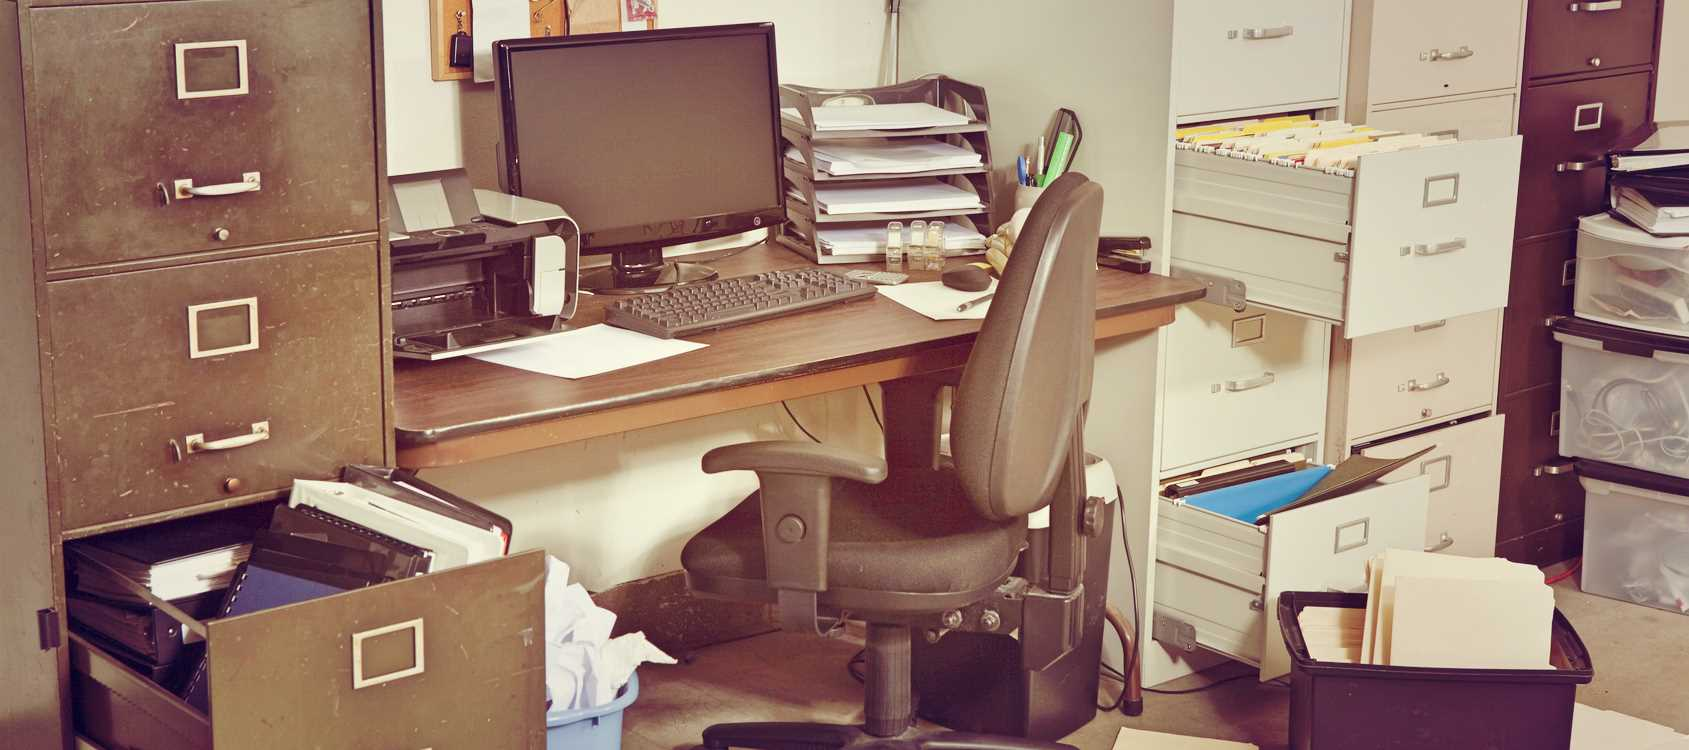 Office Clean Out-Scottsdale Dumpster Rental & Junk Removal Services-We Offer Residential and Commercial Dumpster Removal Services, Portable Toilet Services, Dumpster Rentals, Bulk Trash, Demolition Removal, Junk Hauling, Rubbish Removal, Waste Containers, Debris Removal, 20 & 30 Yard Container Rentals, and much more!